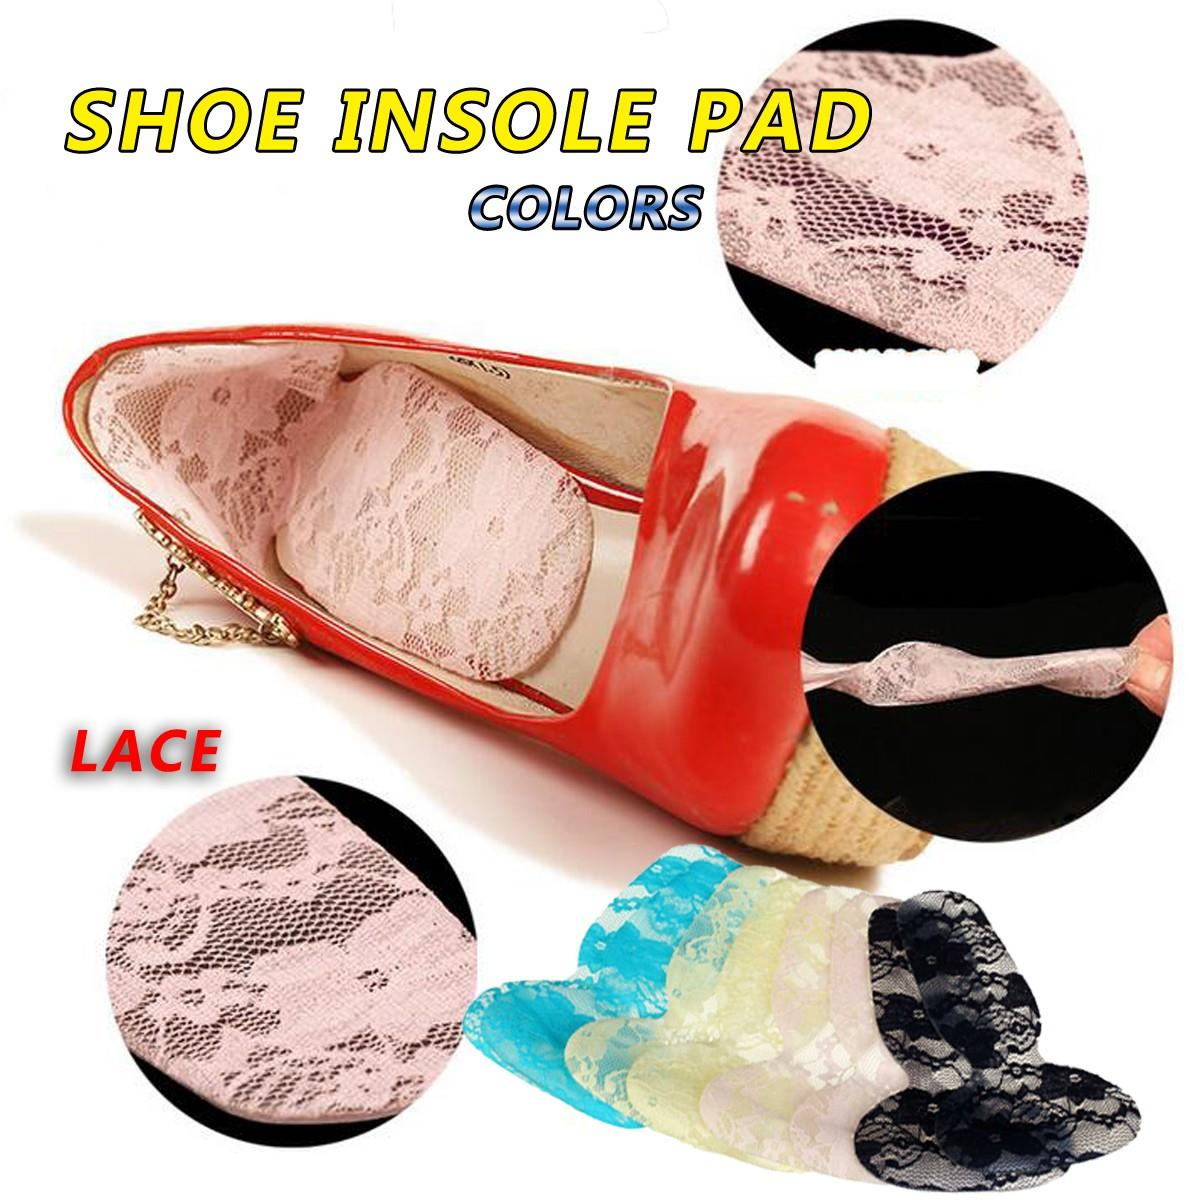 купить NIS 2018 Protector Anti Slip Cushion Shoe Insert 4 Colors 1 Pair High Heel Insole Pads Soft Silicone Lace Gel Foot Care